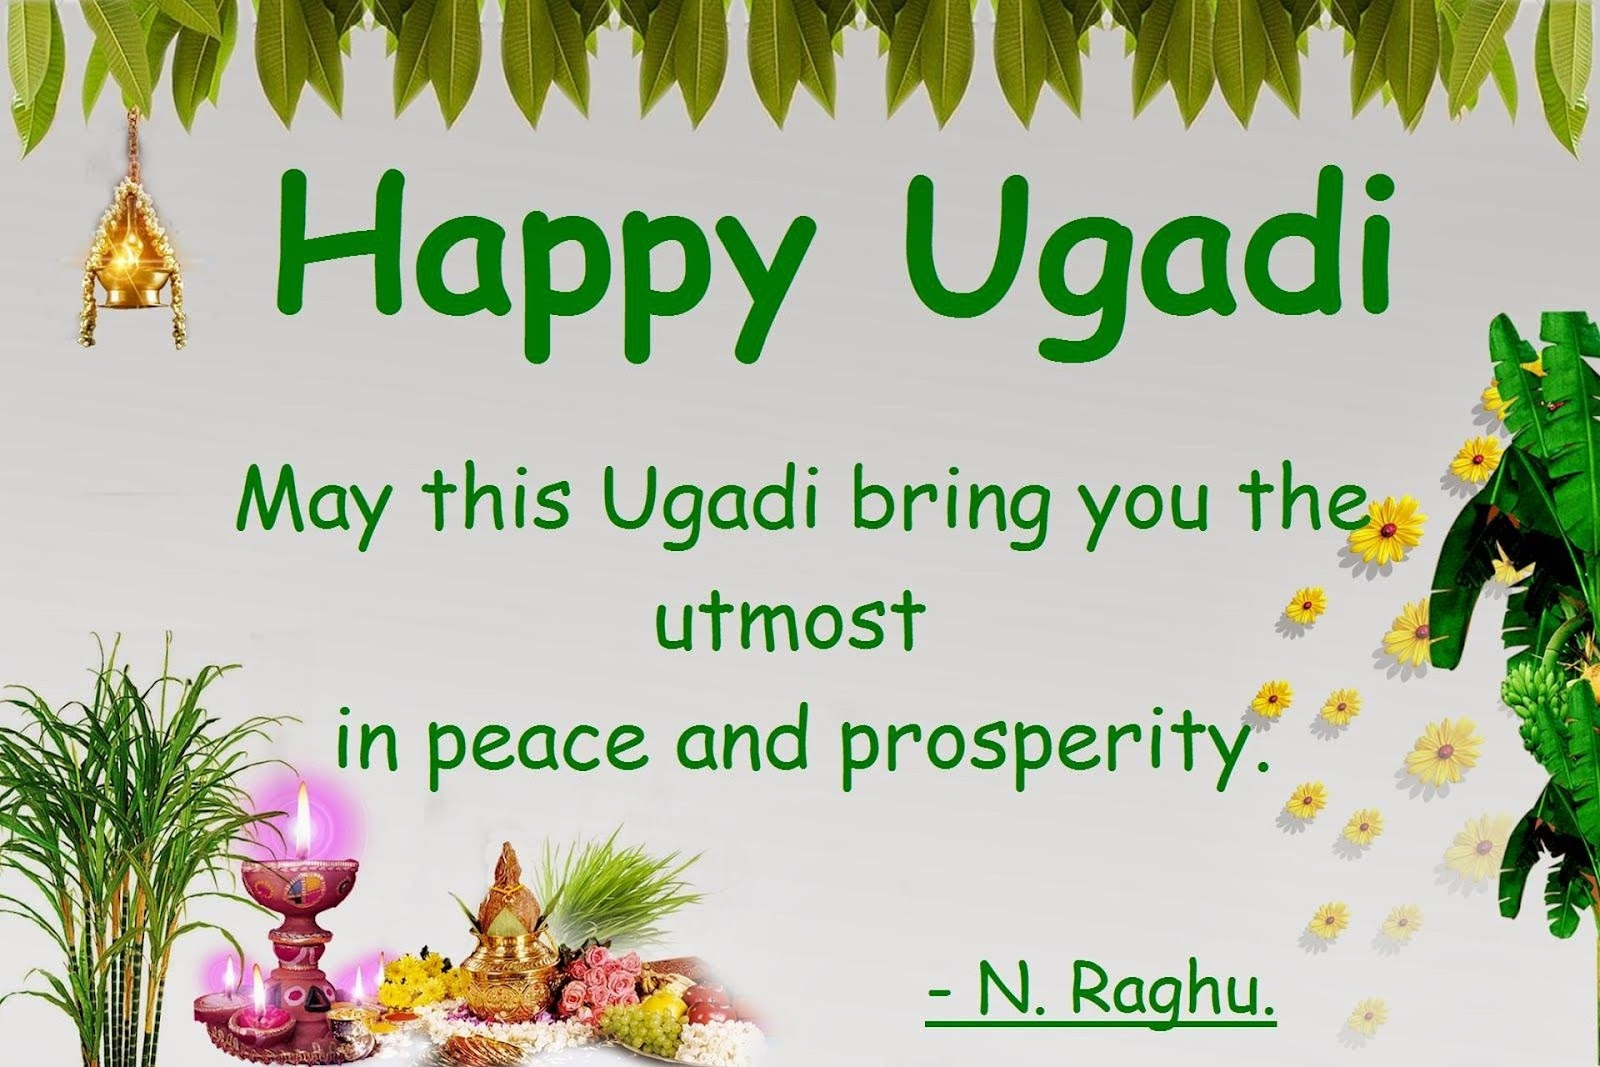 Raghu\'s column!: Telugu New Year Greetings! - Happy Ugadi!